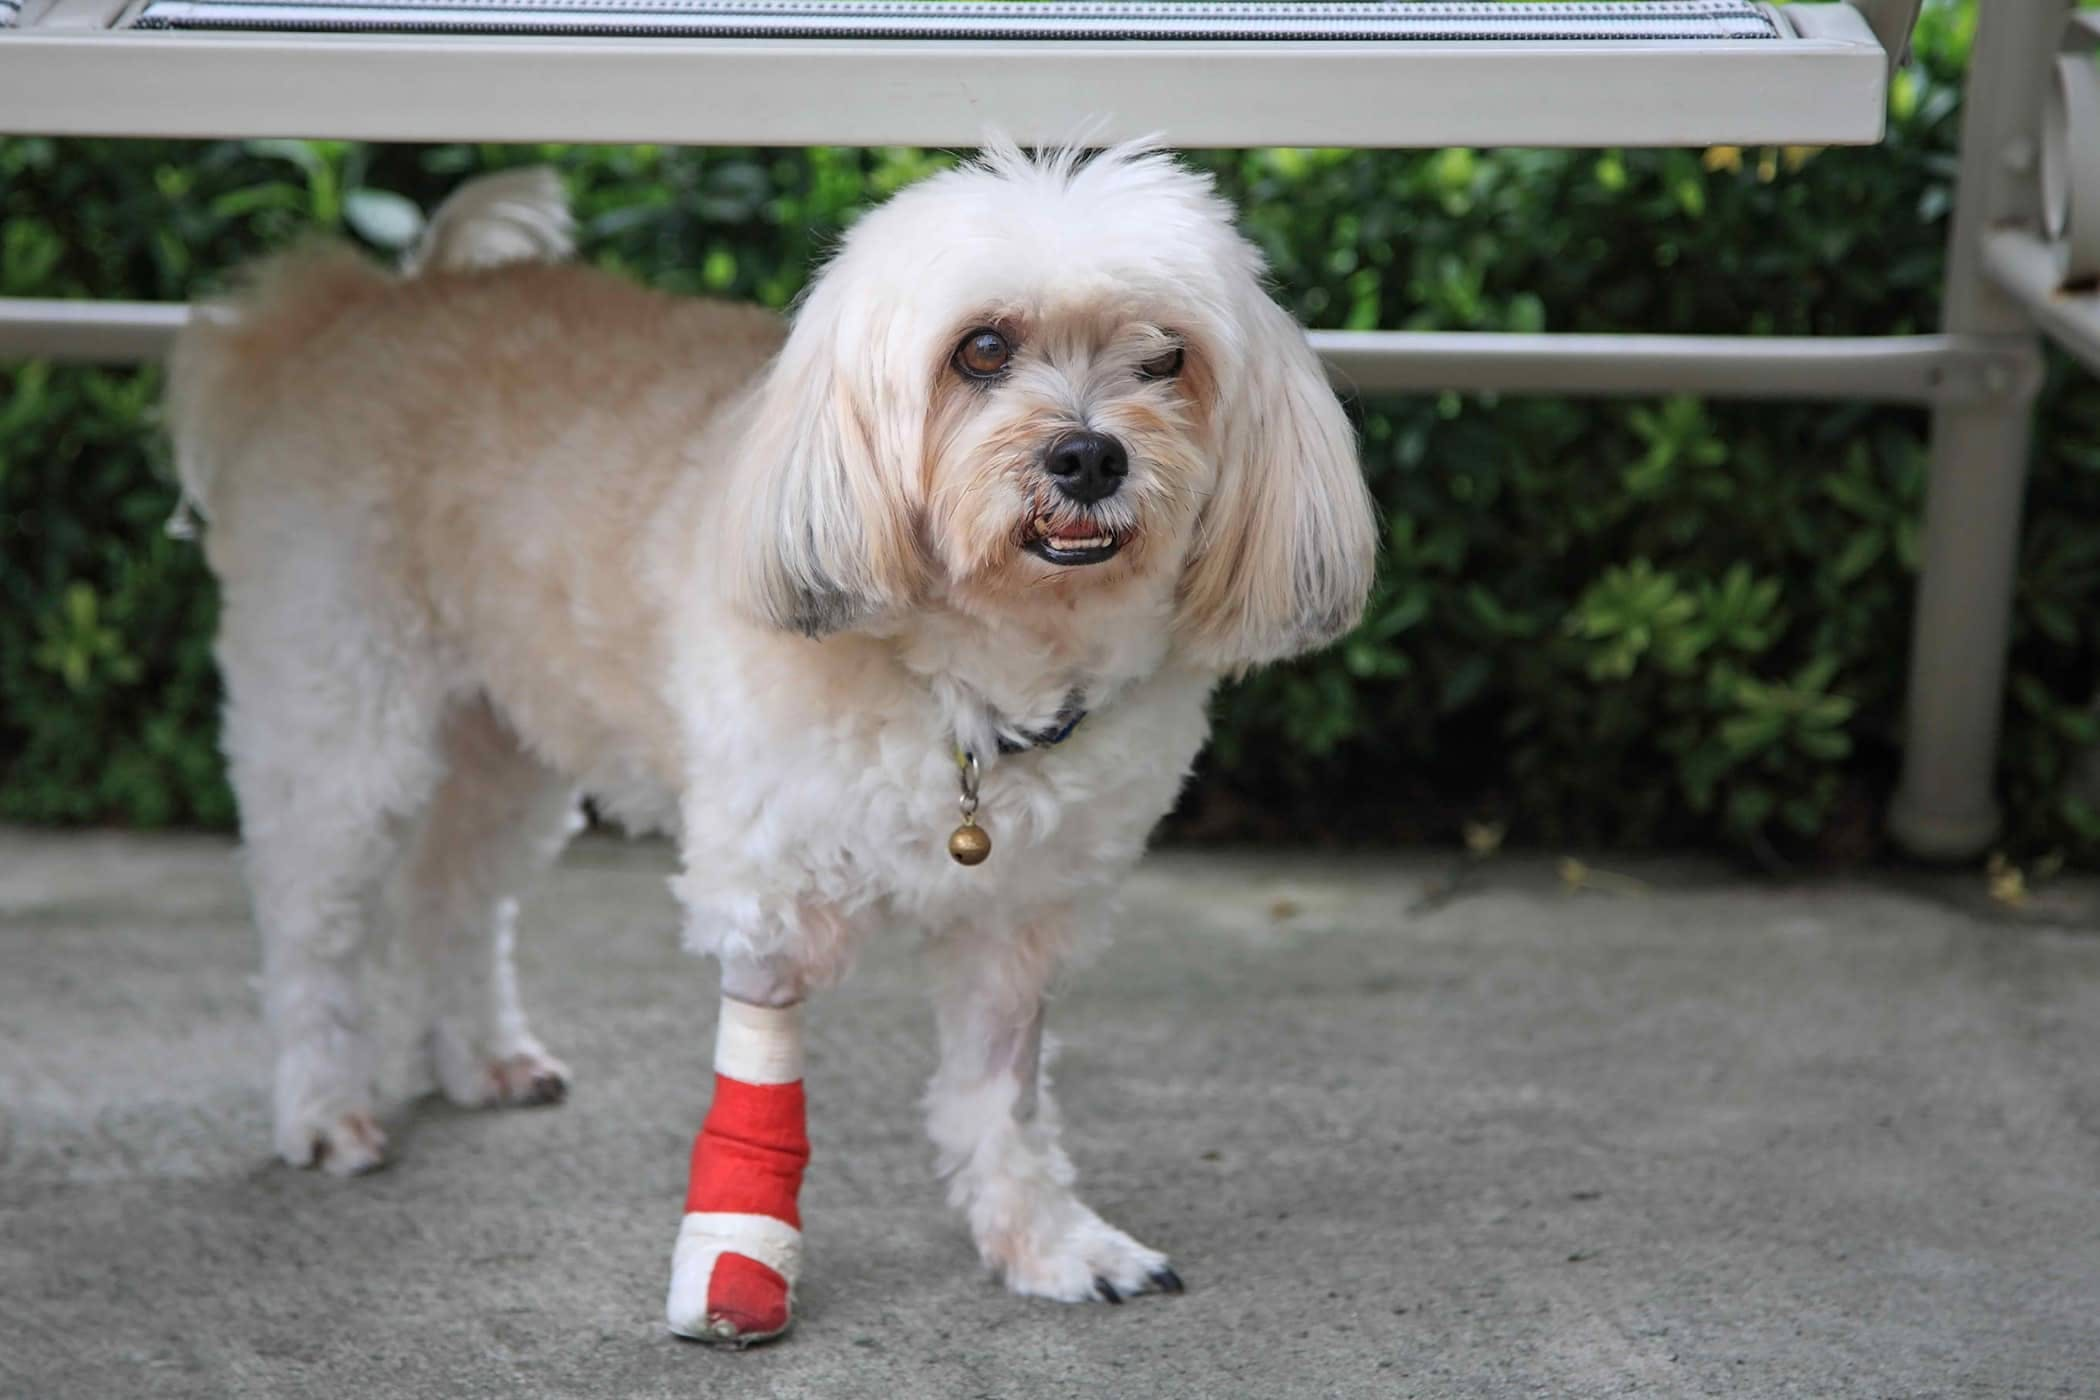 Tibial Tuberosity Advancement in Dogs